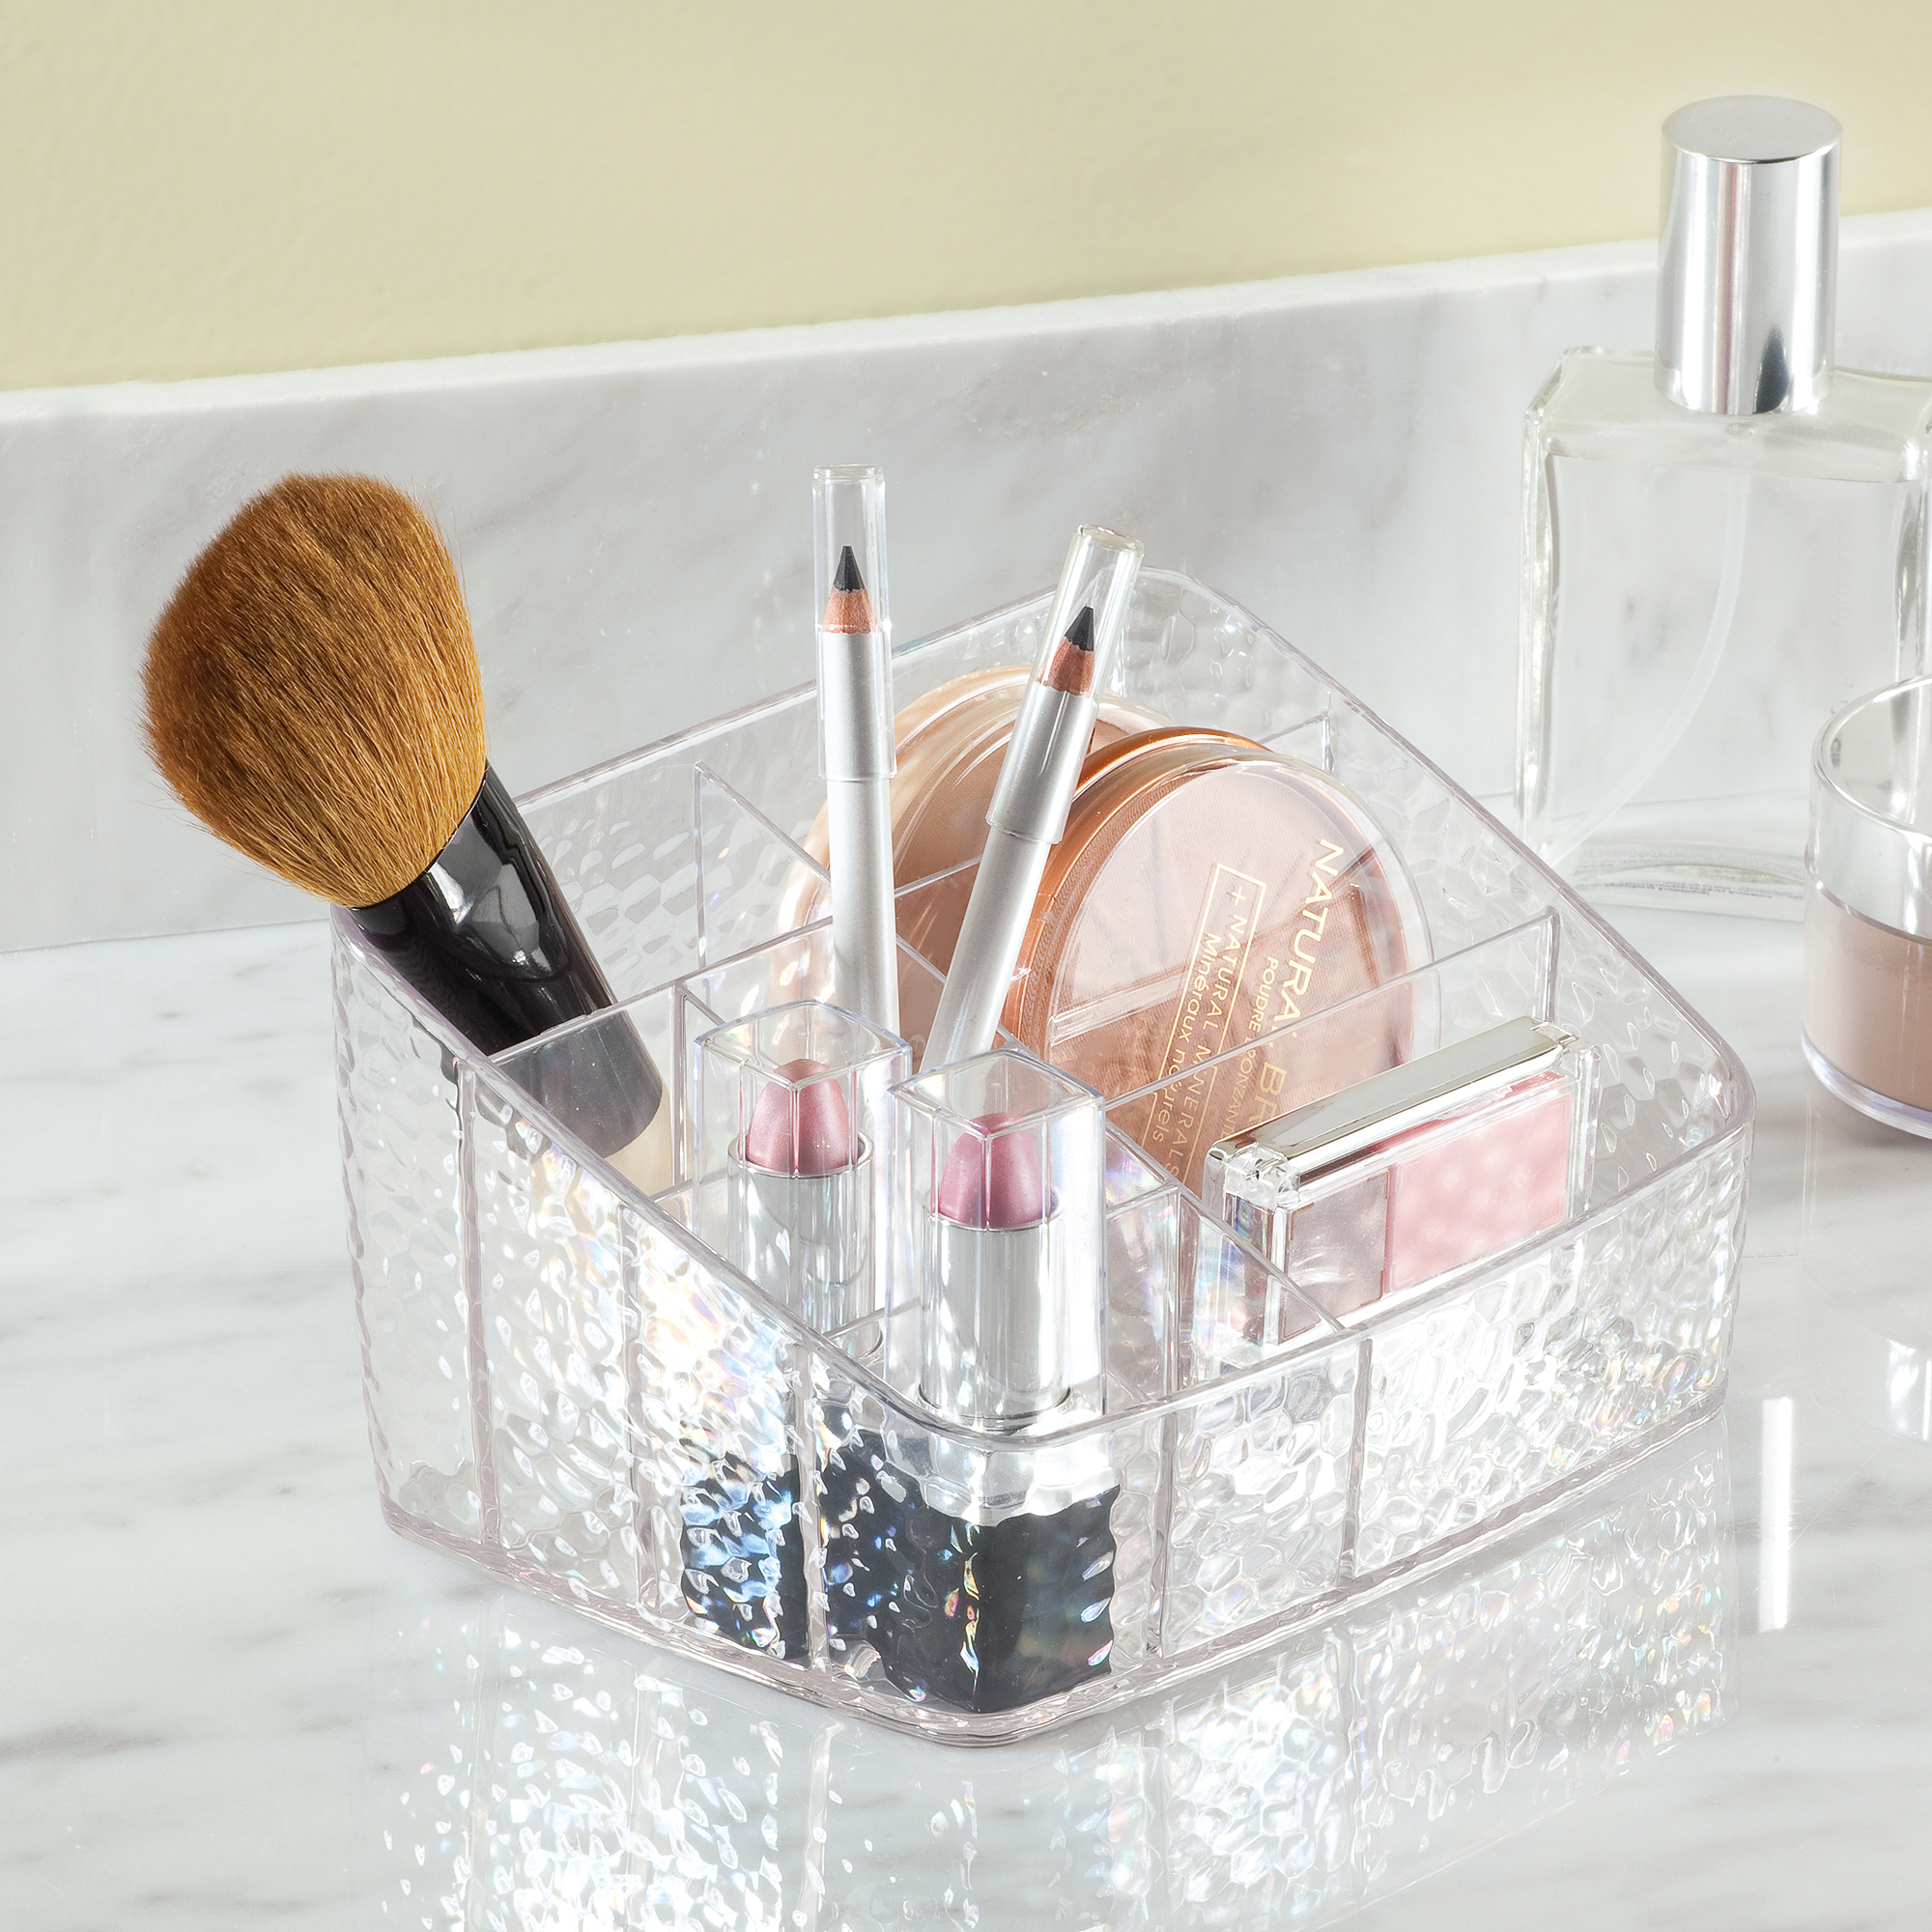 InterDesign Rain Clear Cosmetic Organizer Caddy, Compact Organizer